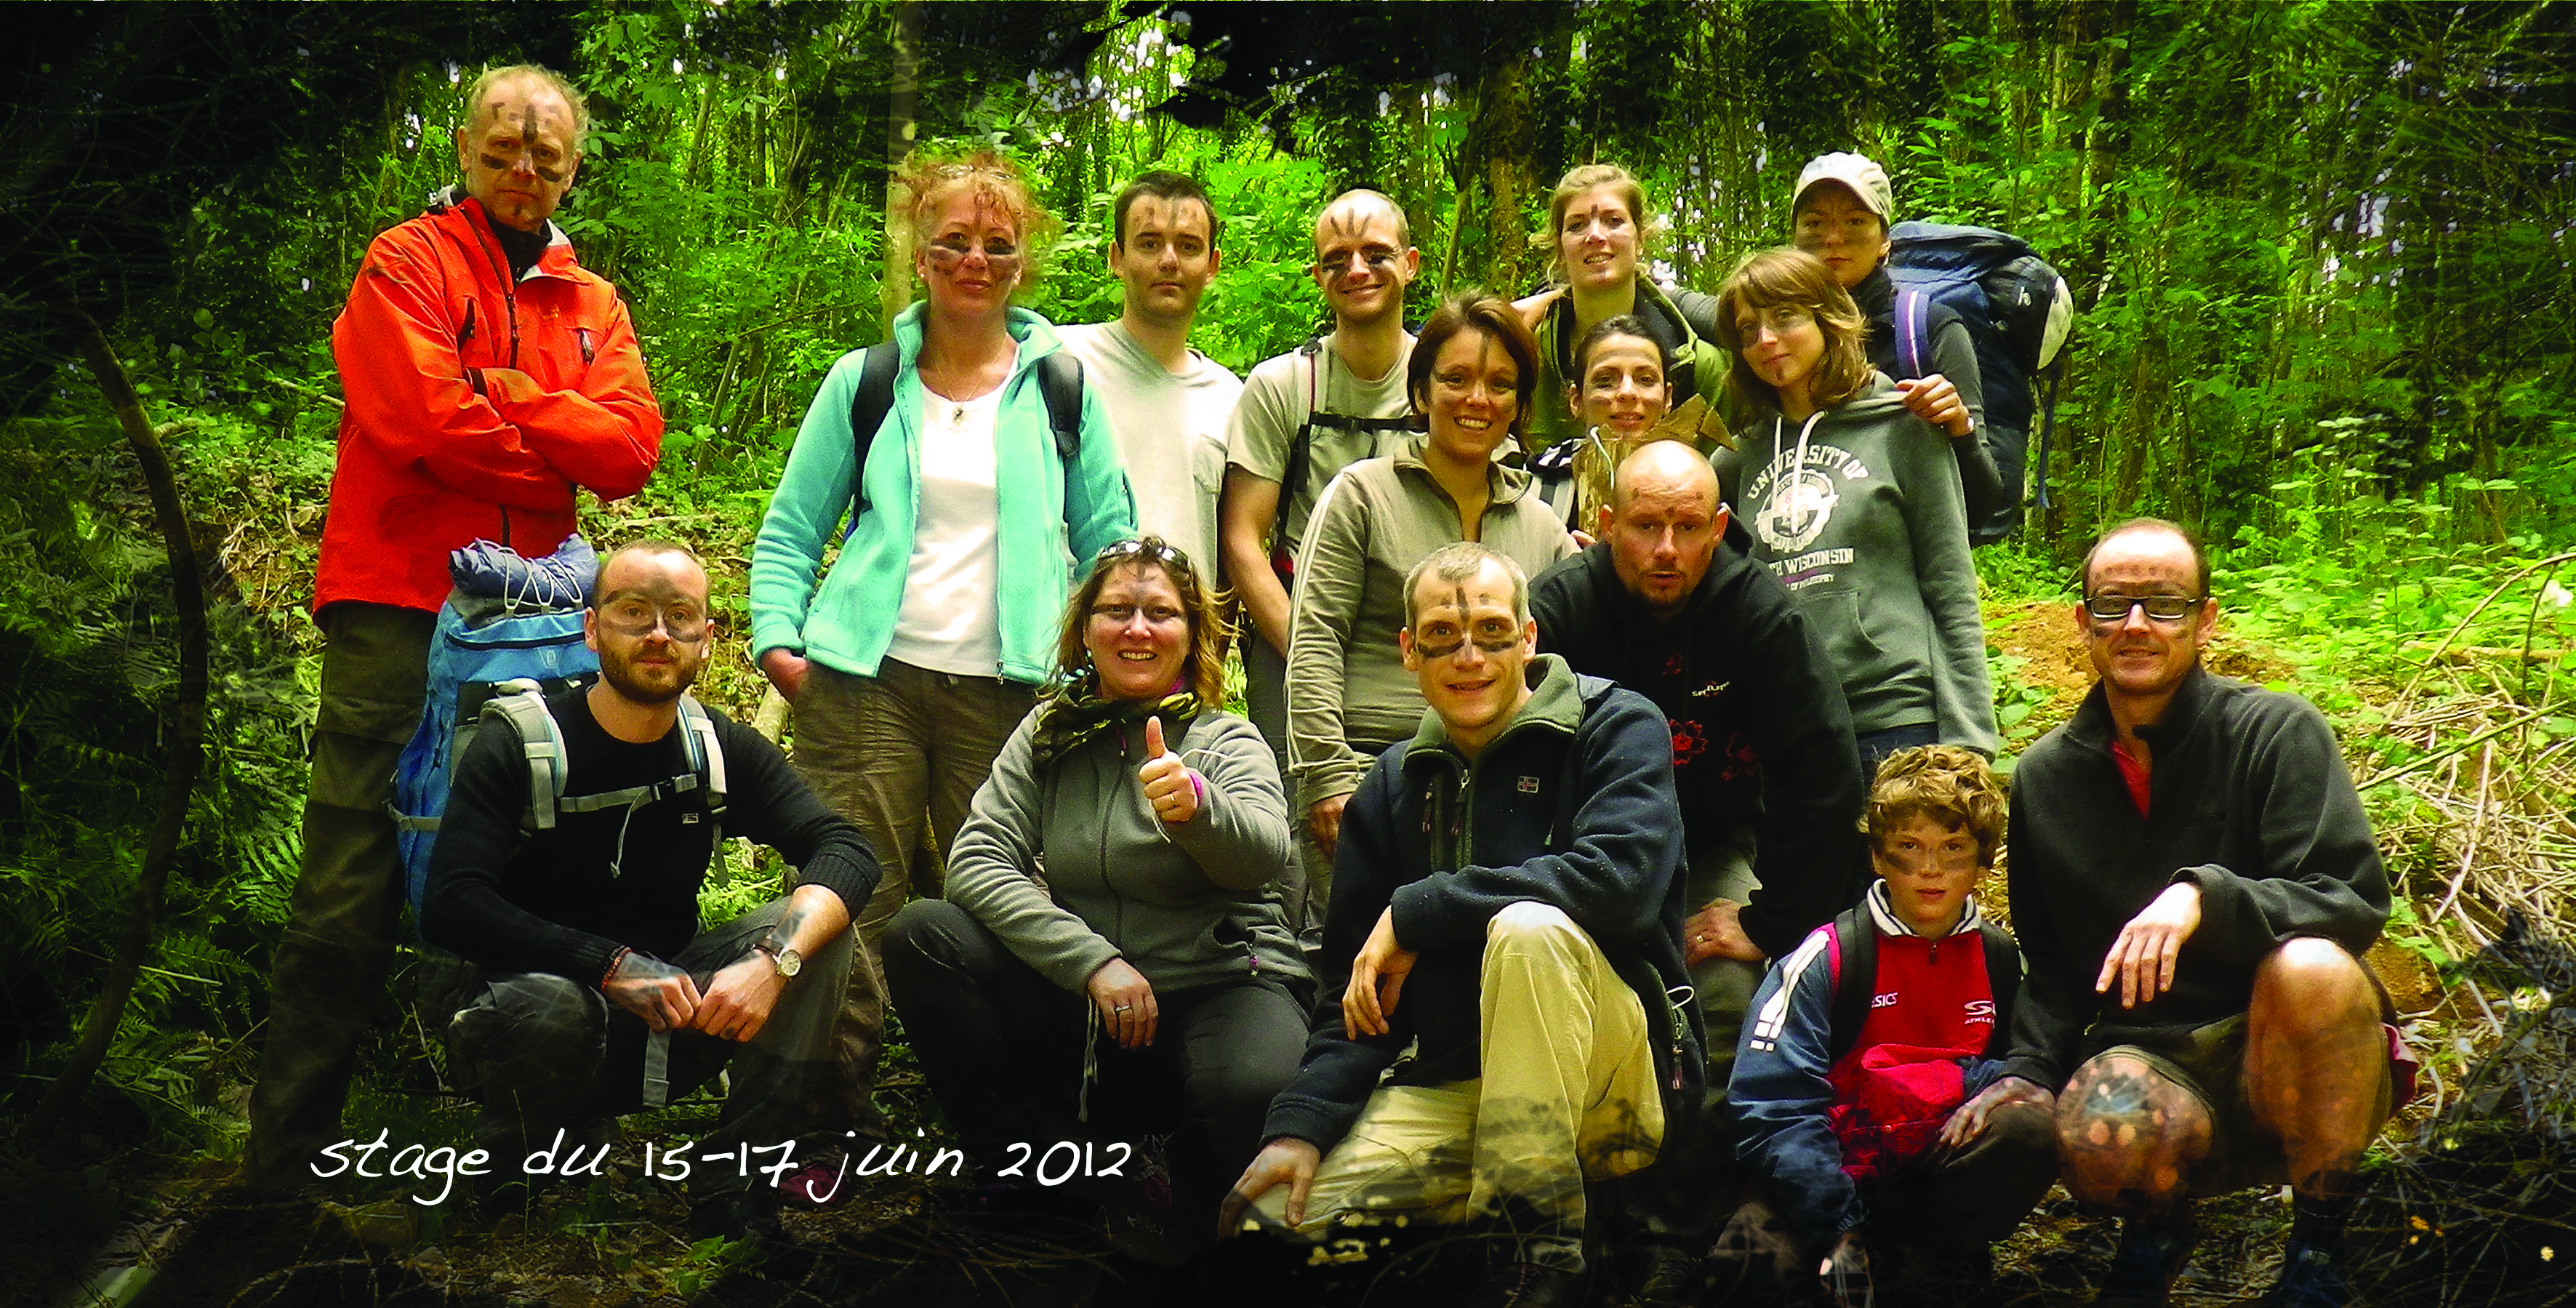 groupe stage 15-17juin2012.jpg